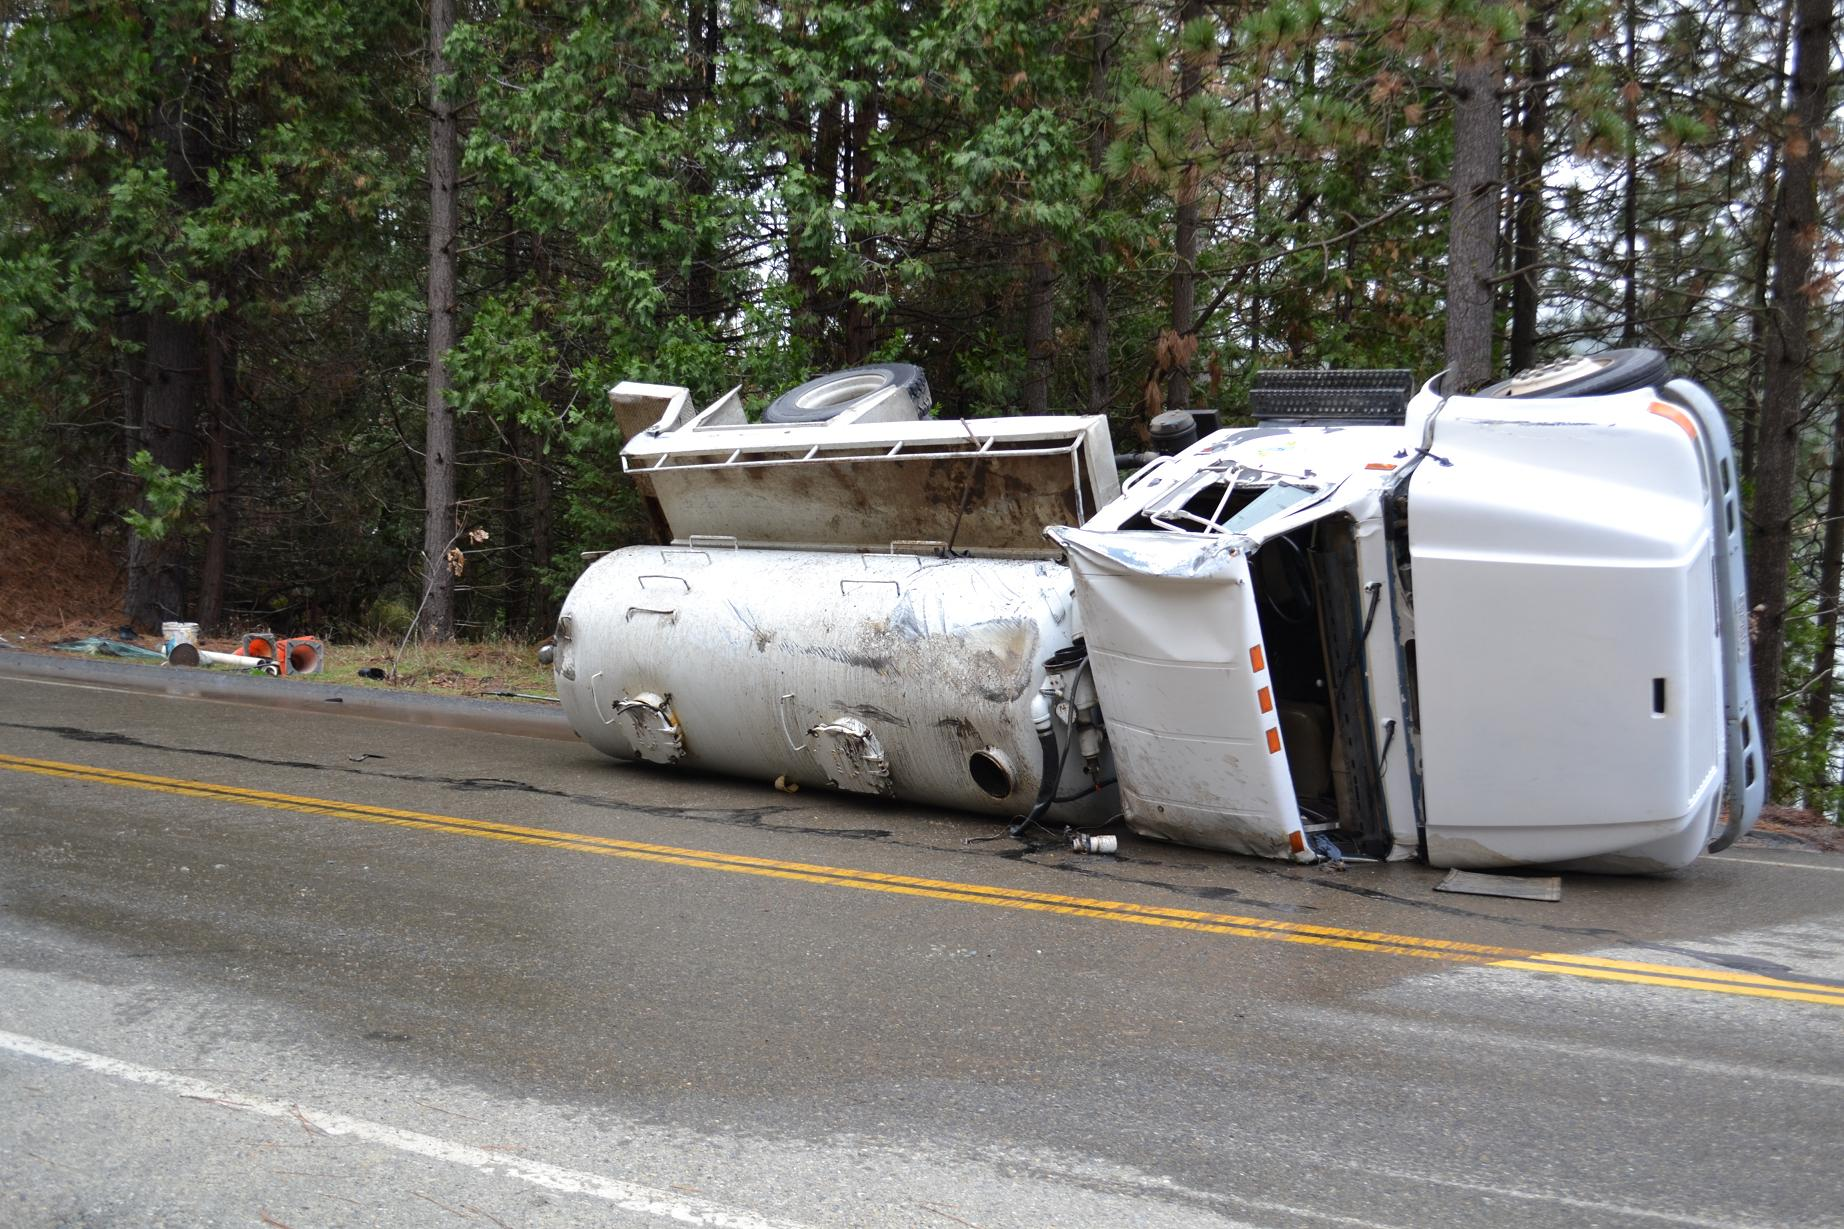 Septic truck turns over near Bass Lake